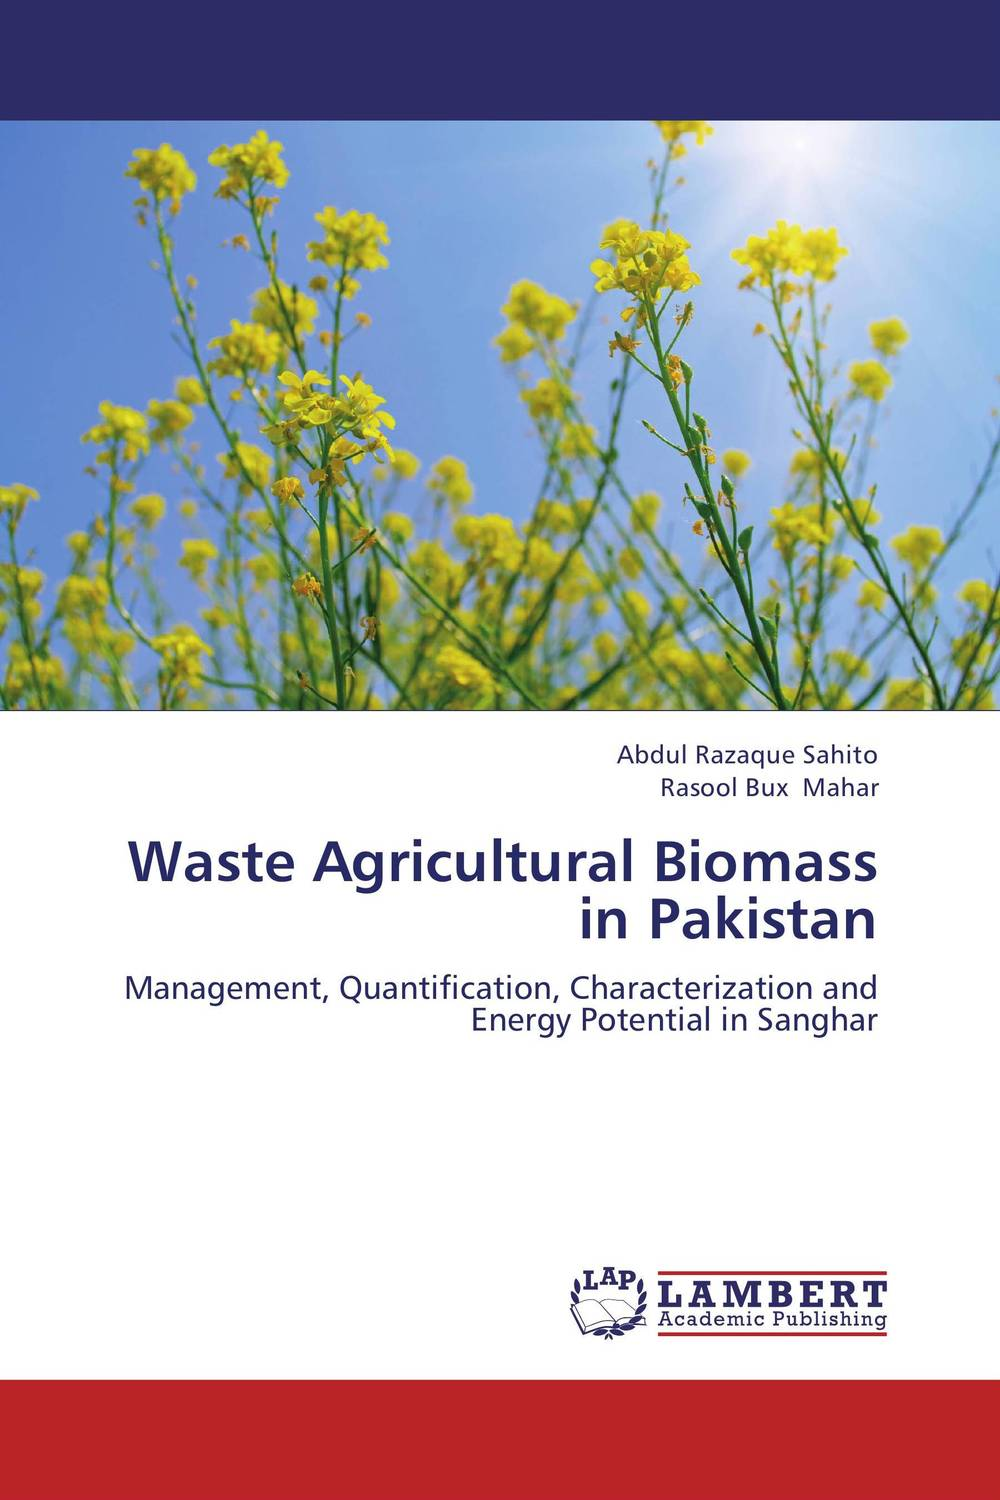 Waste Agricultural Biomass in Pakistan amal owis and yasser el tahlawy residues and wastes biomass in egypt